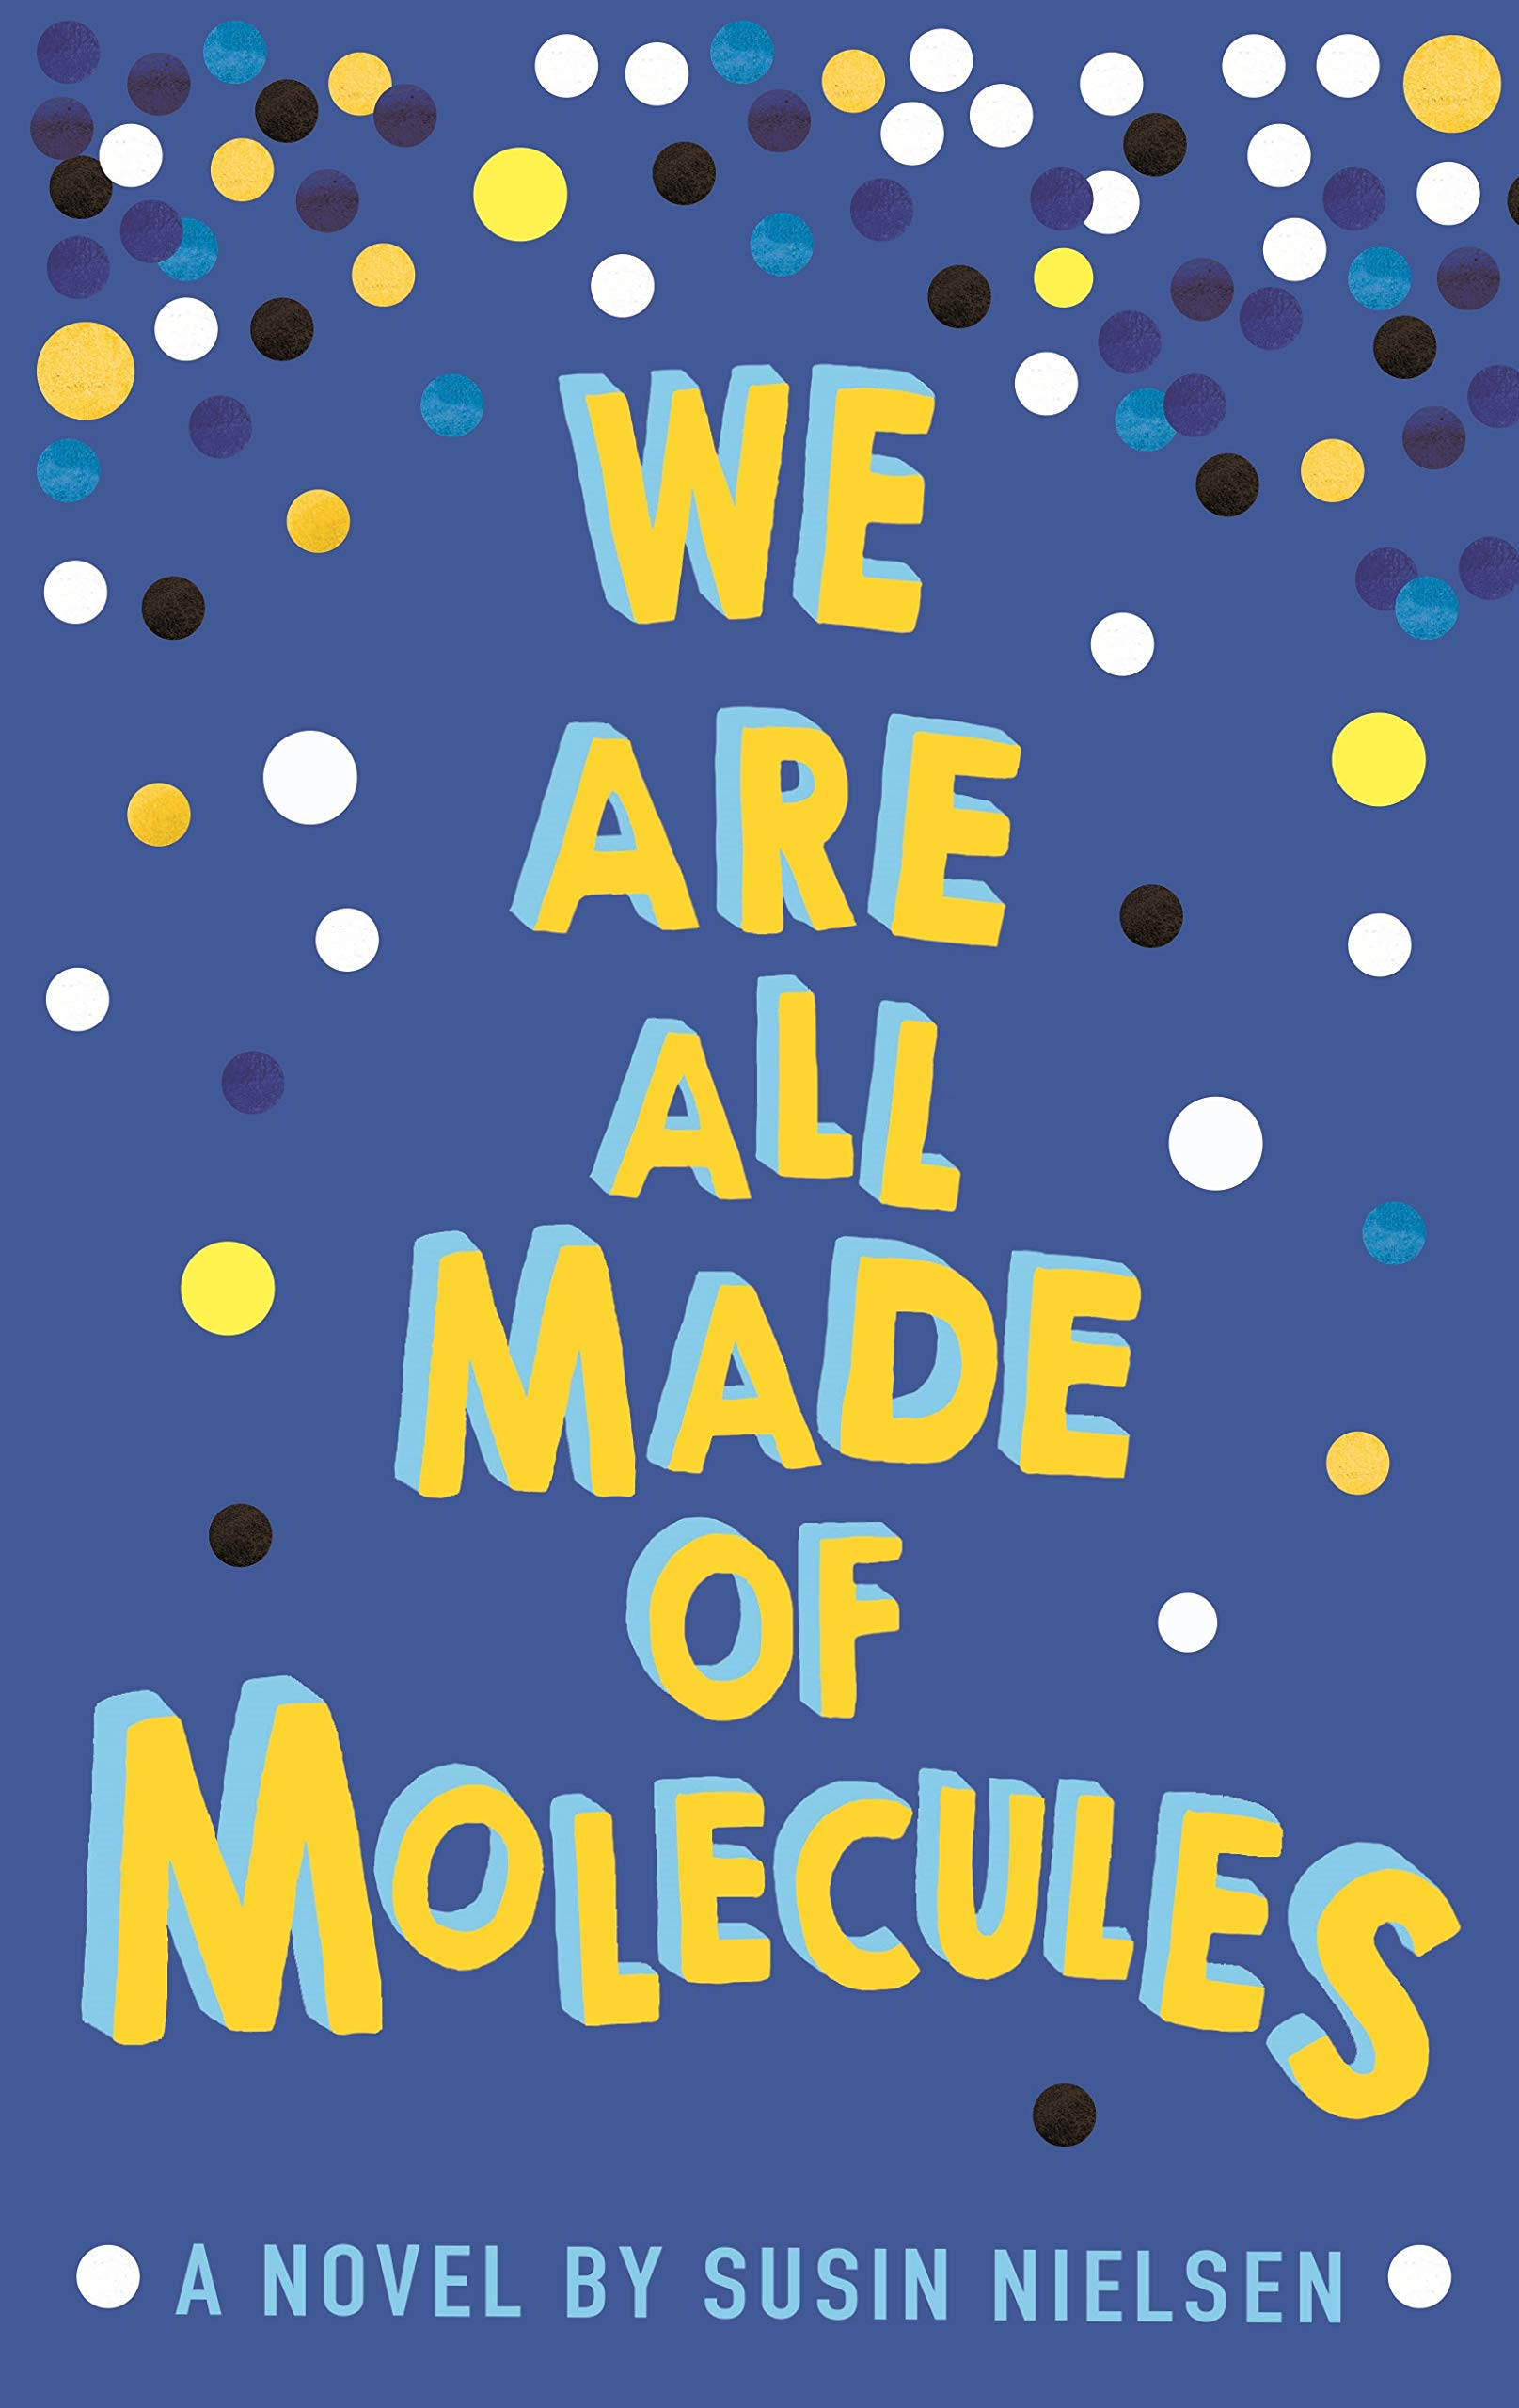 We Are All Made of Molecules: Amazon.co.uk: Nielsen, Susin: Books